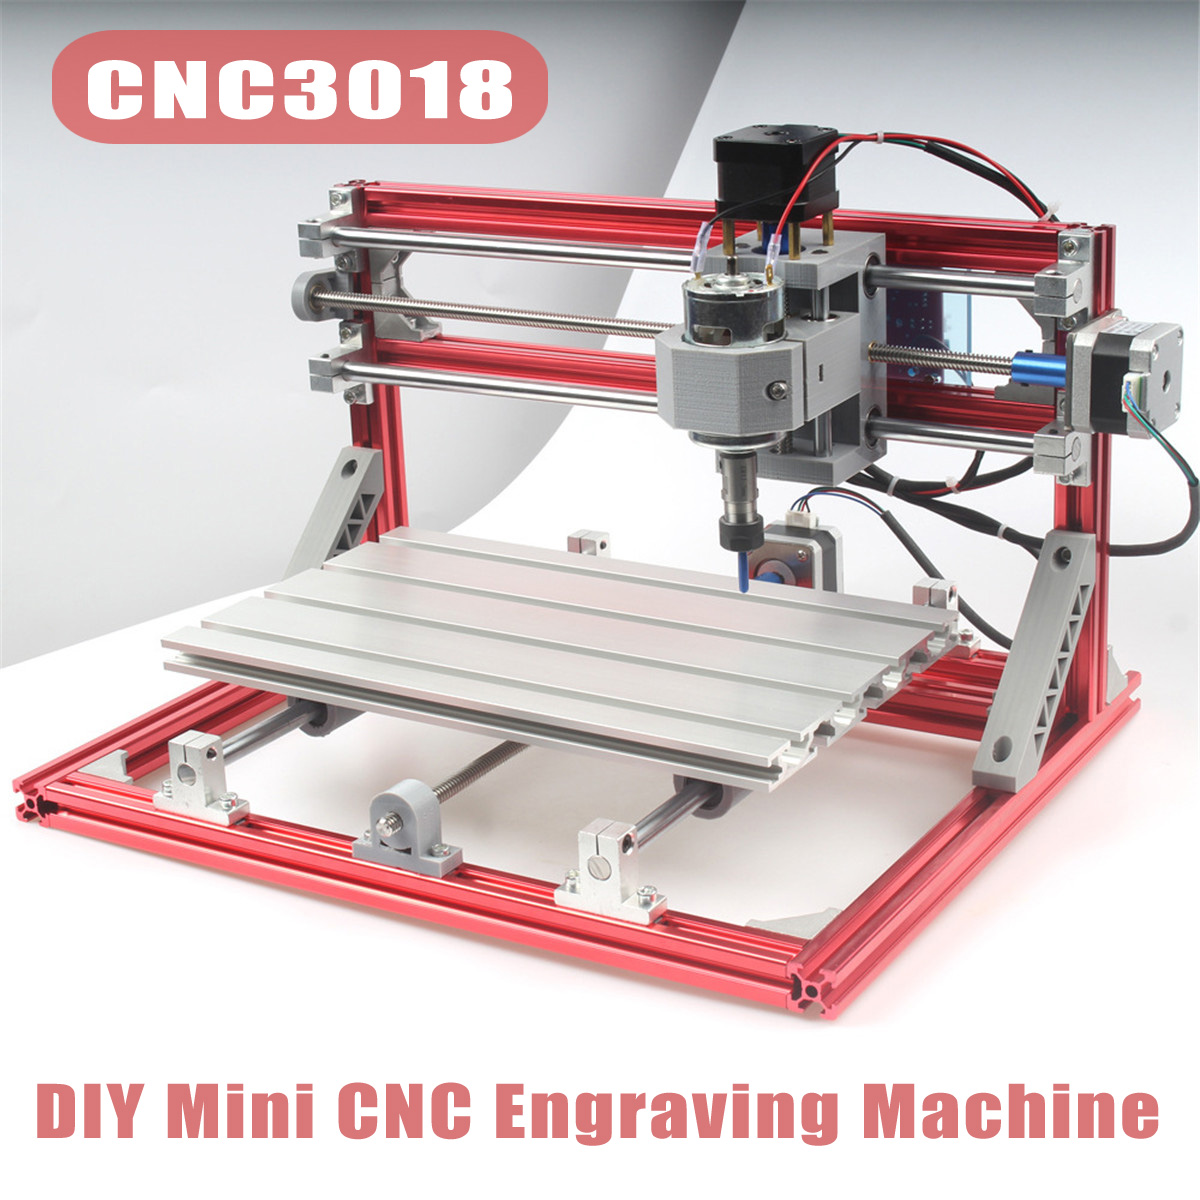 DIY CNC 3018 Wood Engraving Carving PCB Milling Engraving Machine Router Engraver GRBL Control Aluminium and Plastic cnc engraver machine 3018 pcb milling wood router diy machine grbl control wood carving engraver with er11 spindle motor